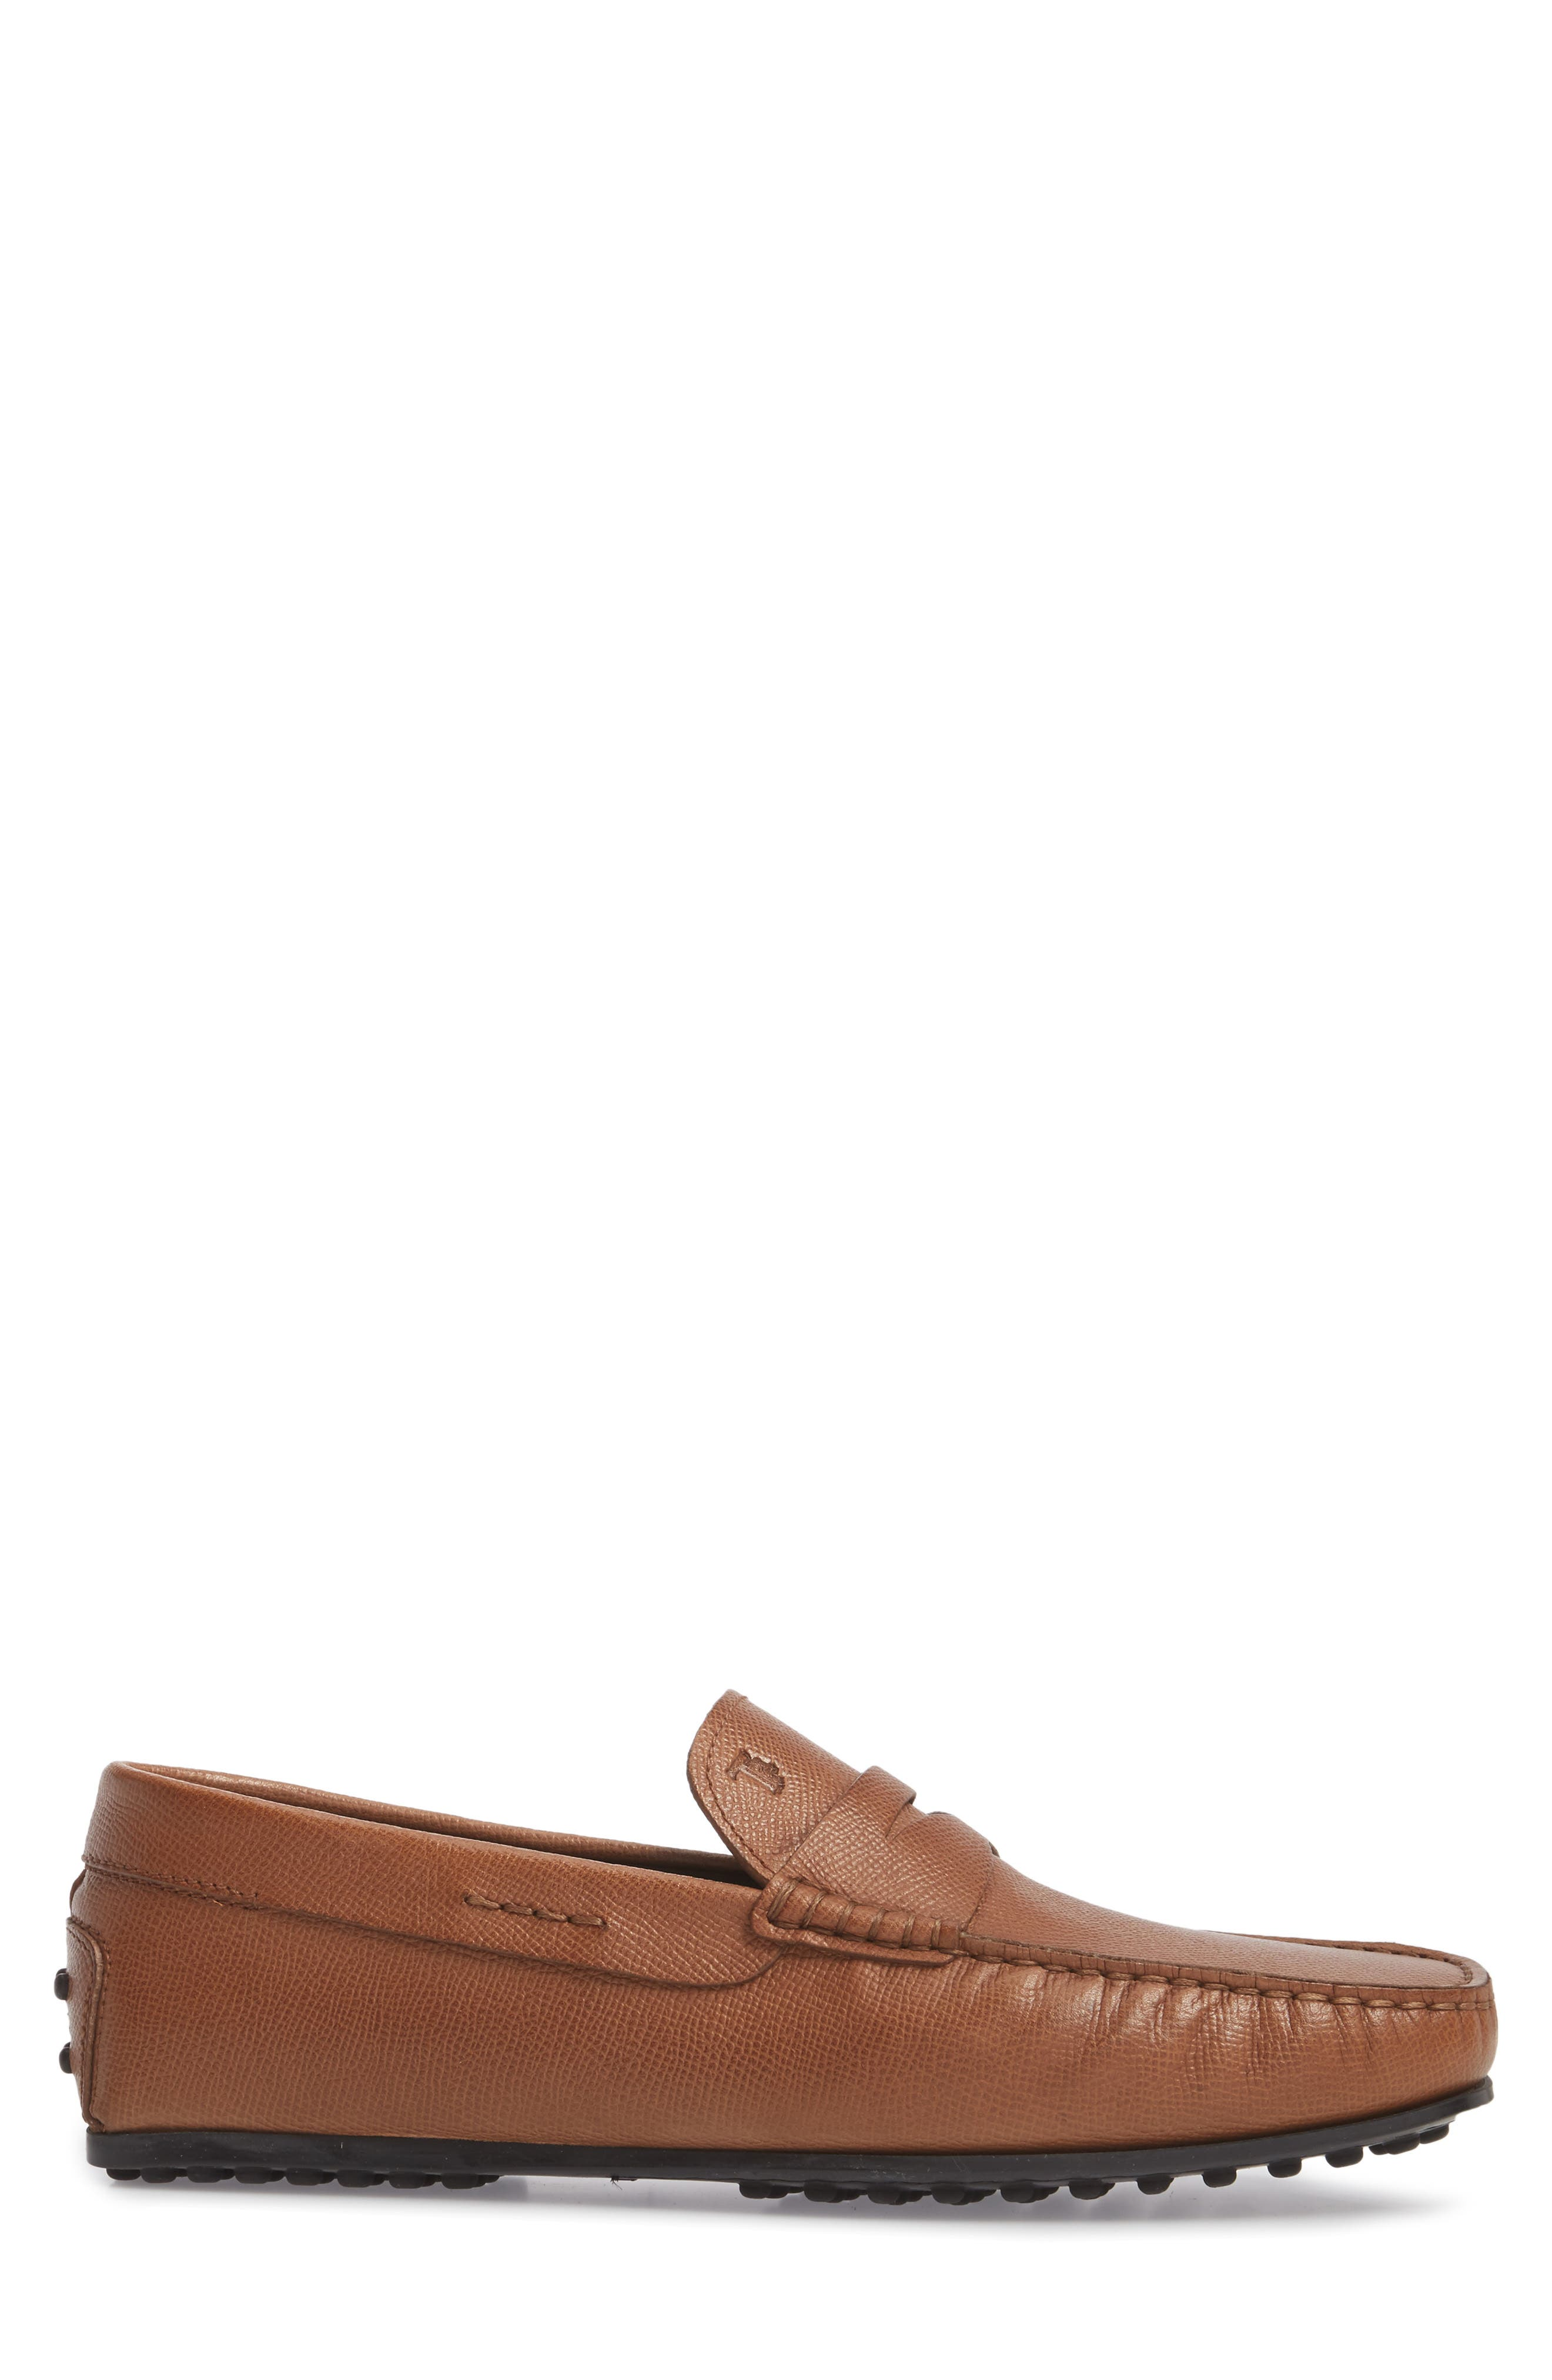 City Driving Shoe,                             Alternate thumbnail 3, color,                             TAN LEATHER